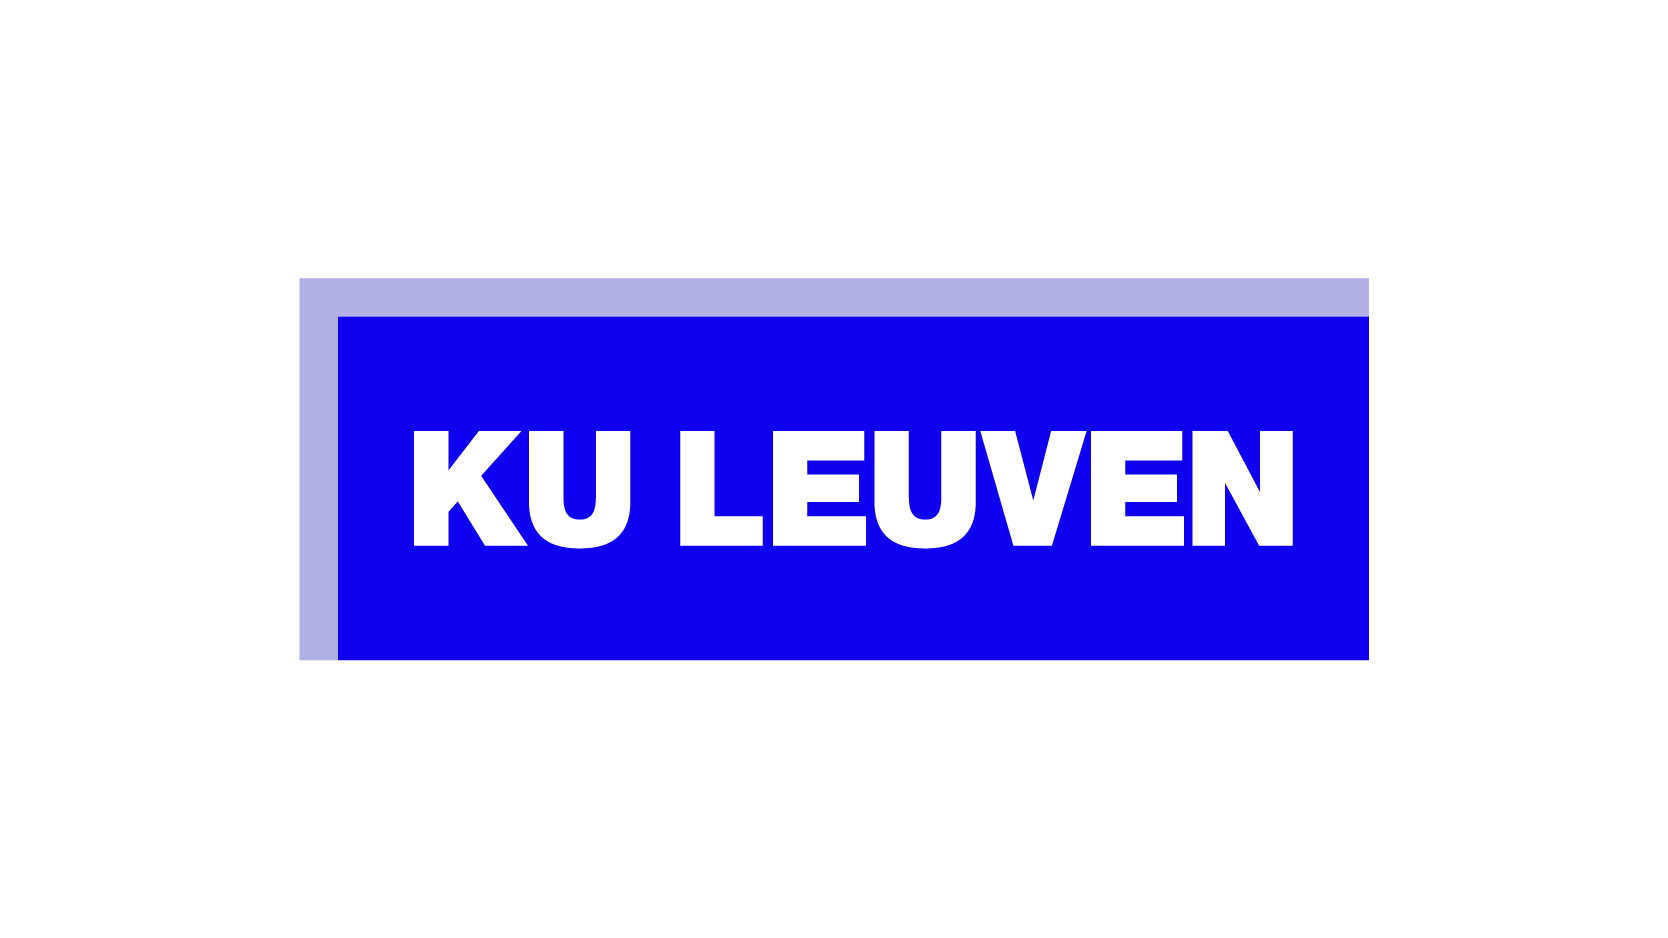 AND&-Sponsor_5 KULeuven.png